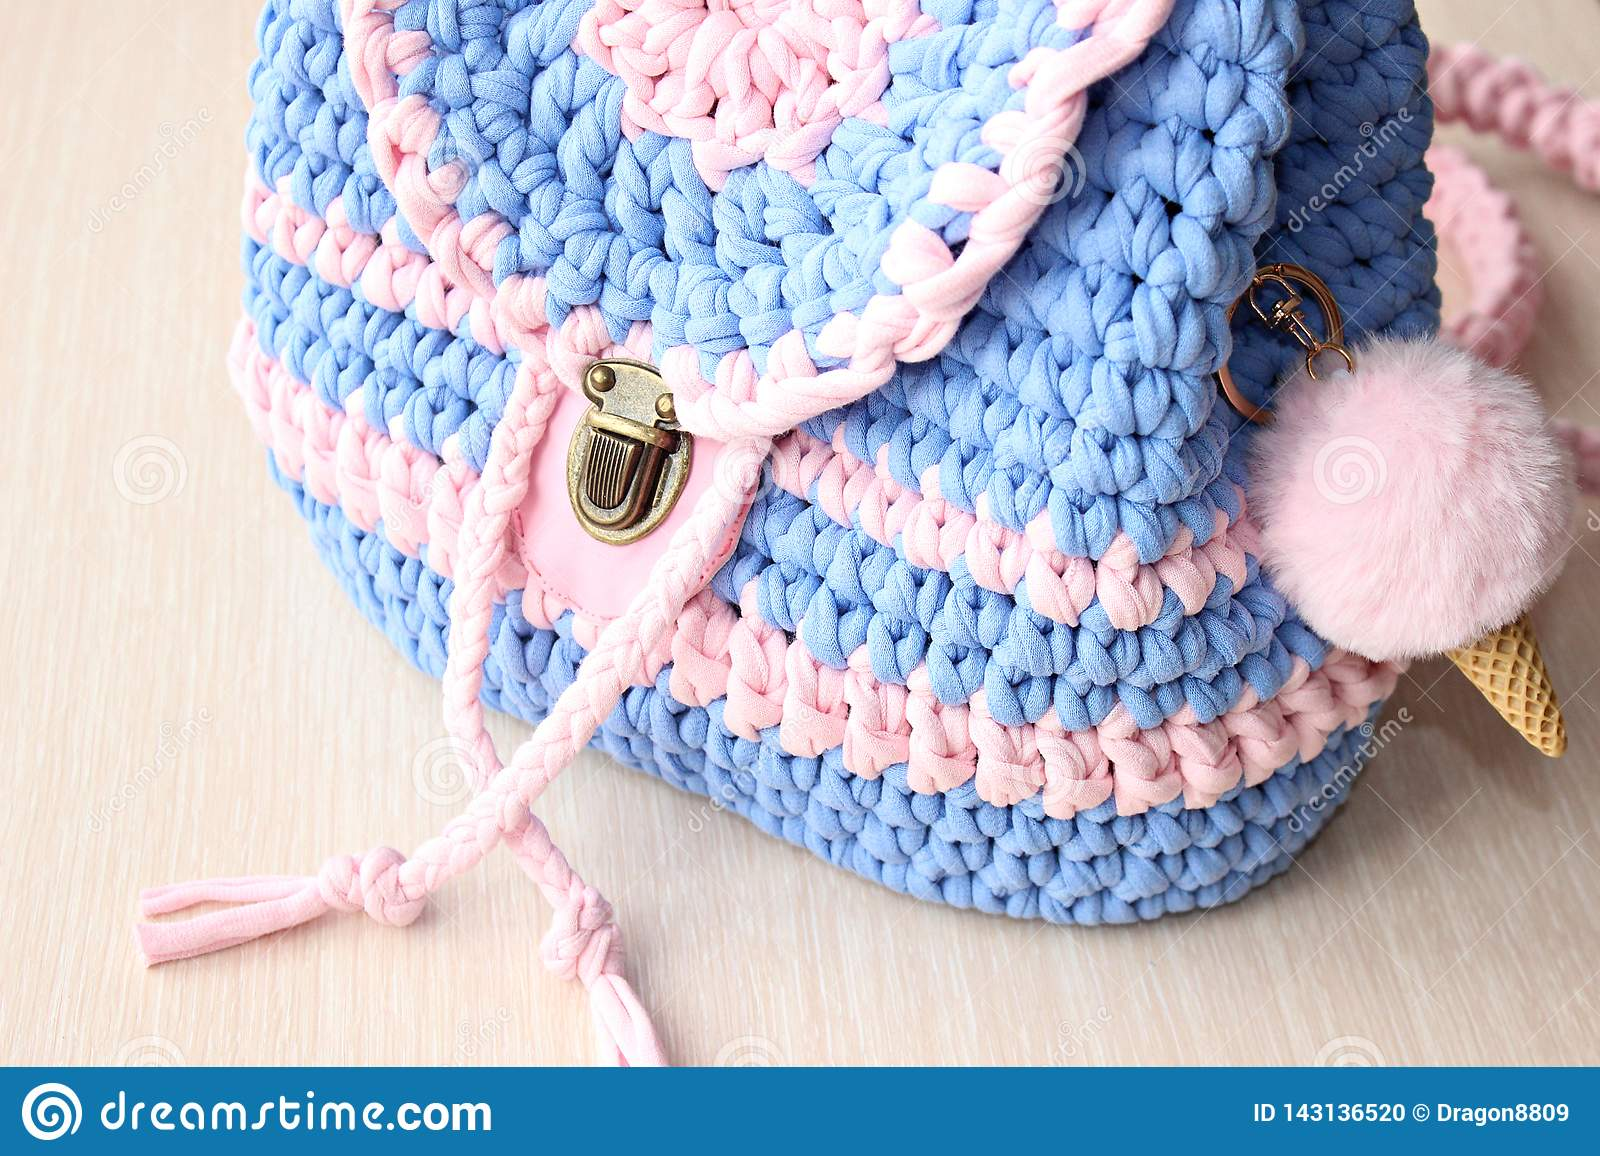 Casual knitted backpack in delicate colors.